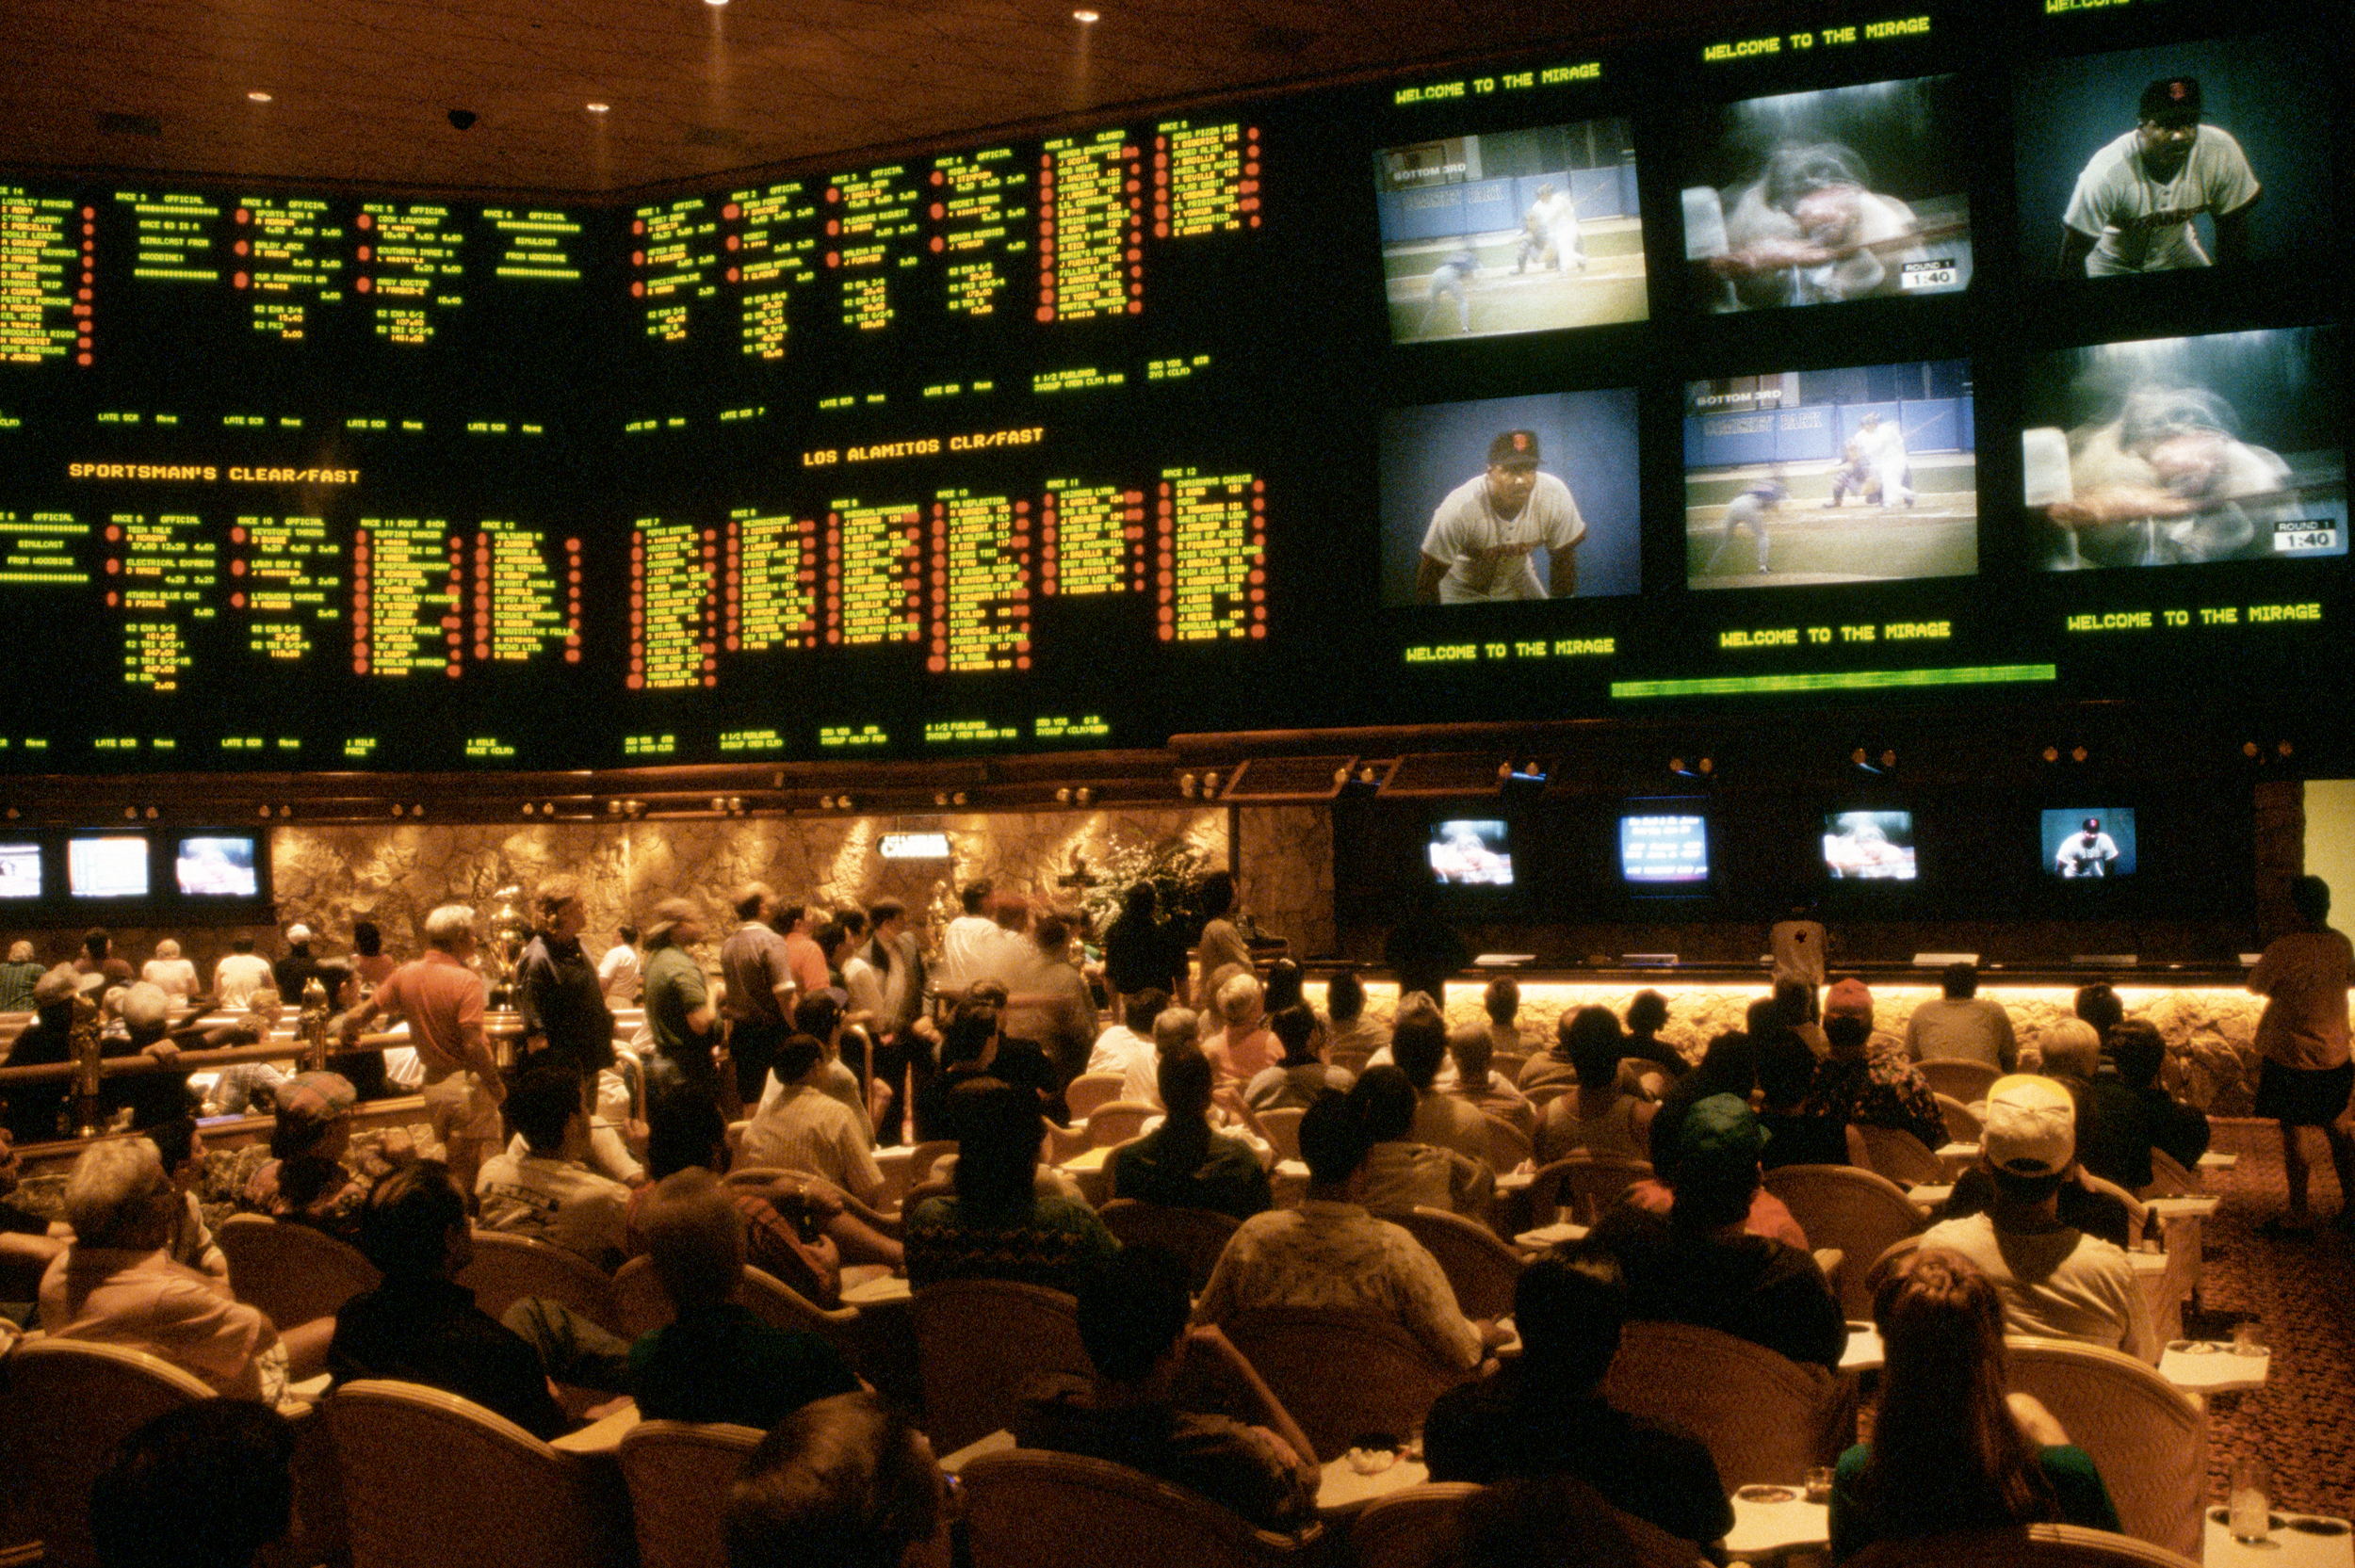 Cash-hungry states betting Supreme Court will legalize sports gambling